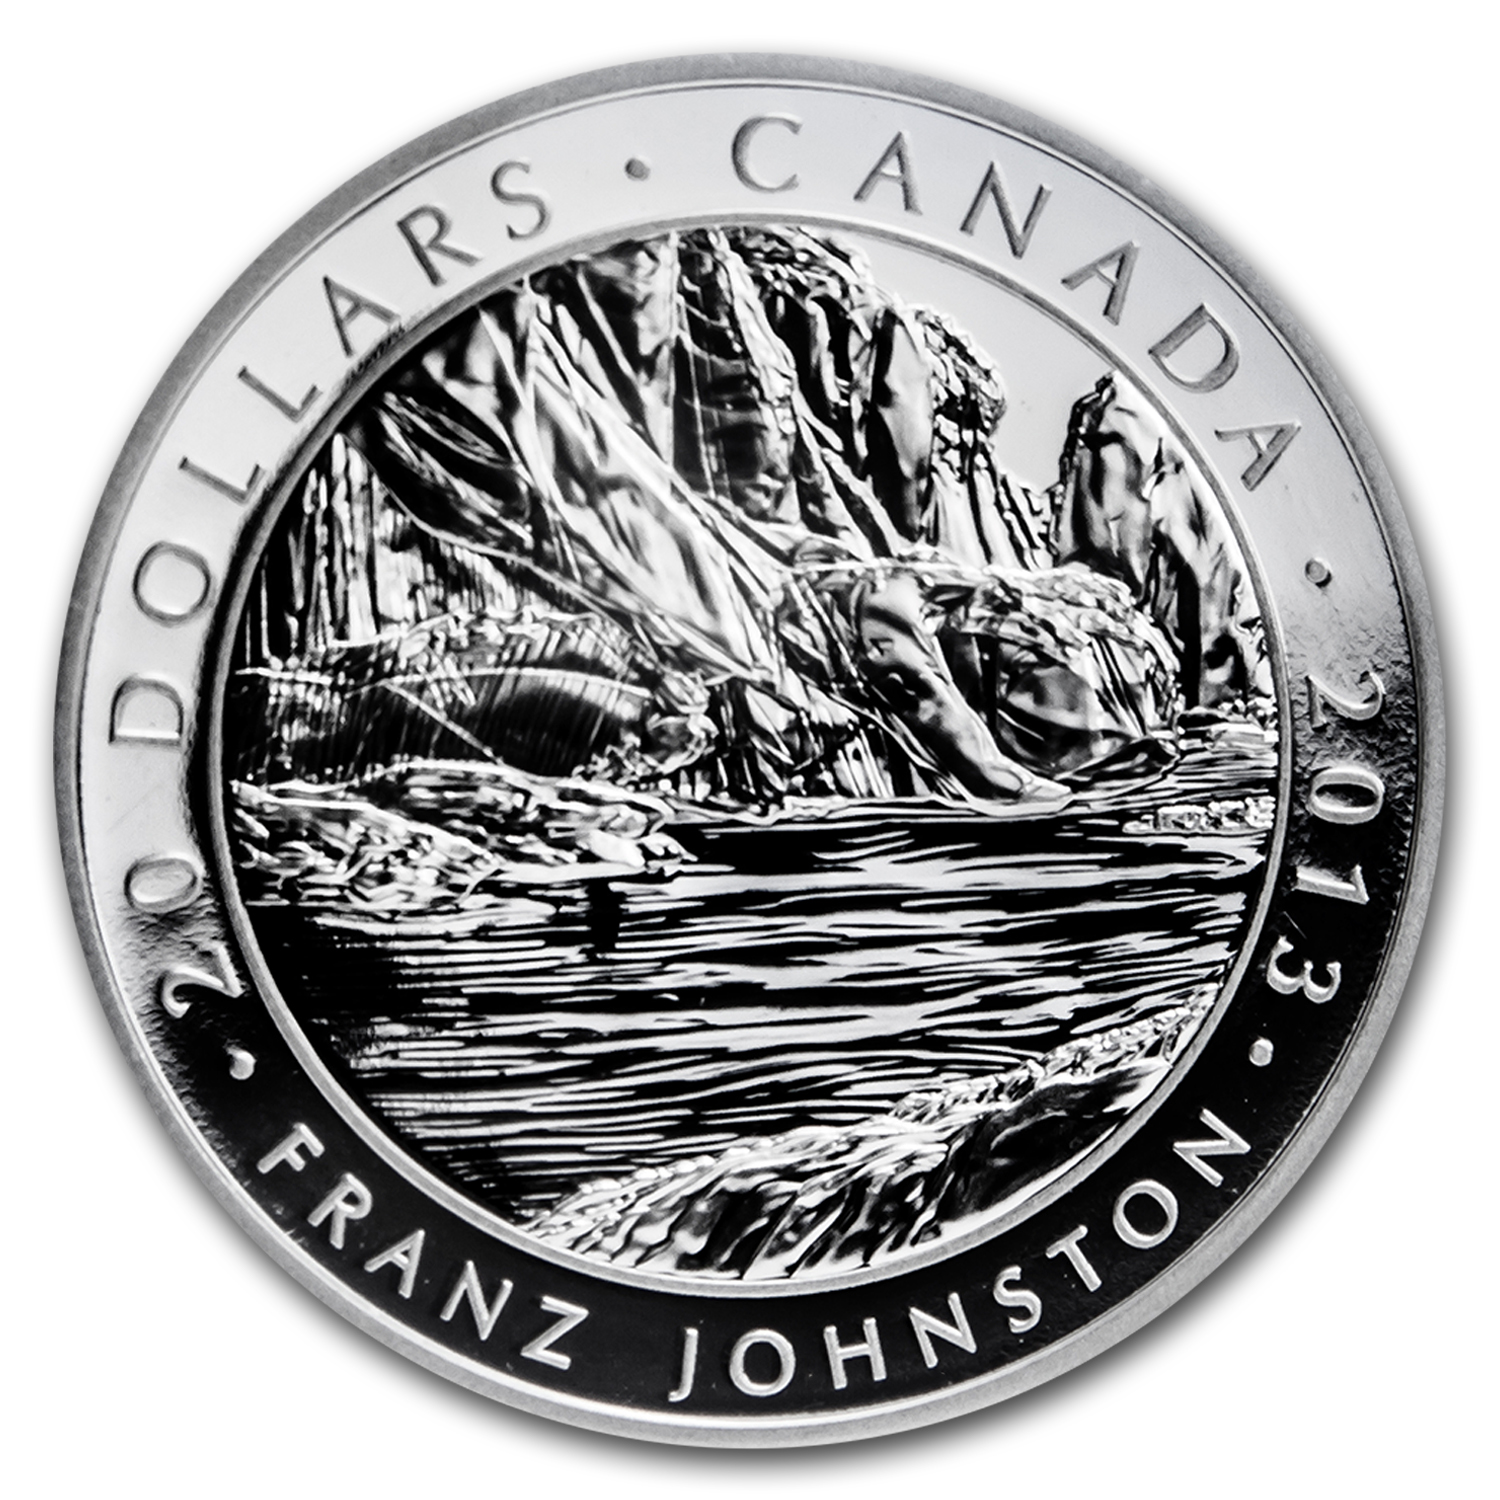 2013 Canada 1 oz Silver $20 Johnston's Guardian of the Gorge